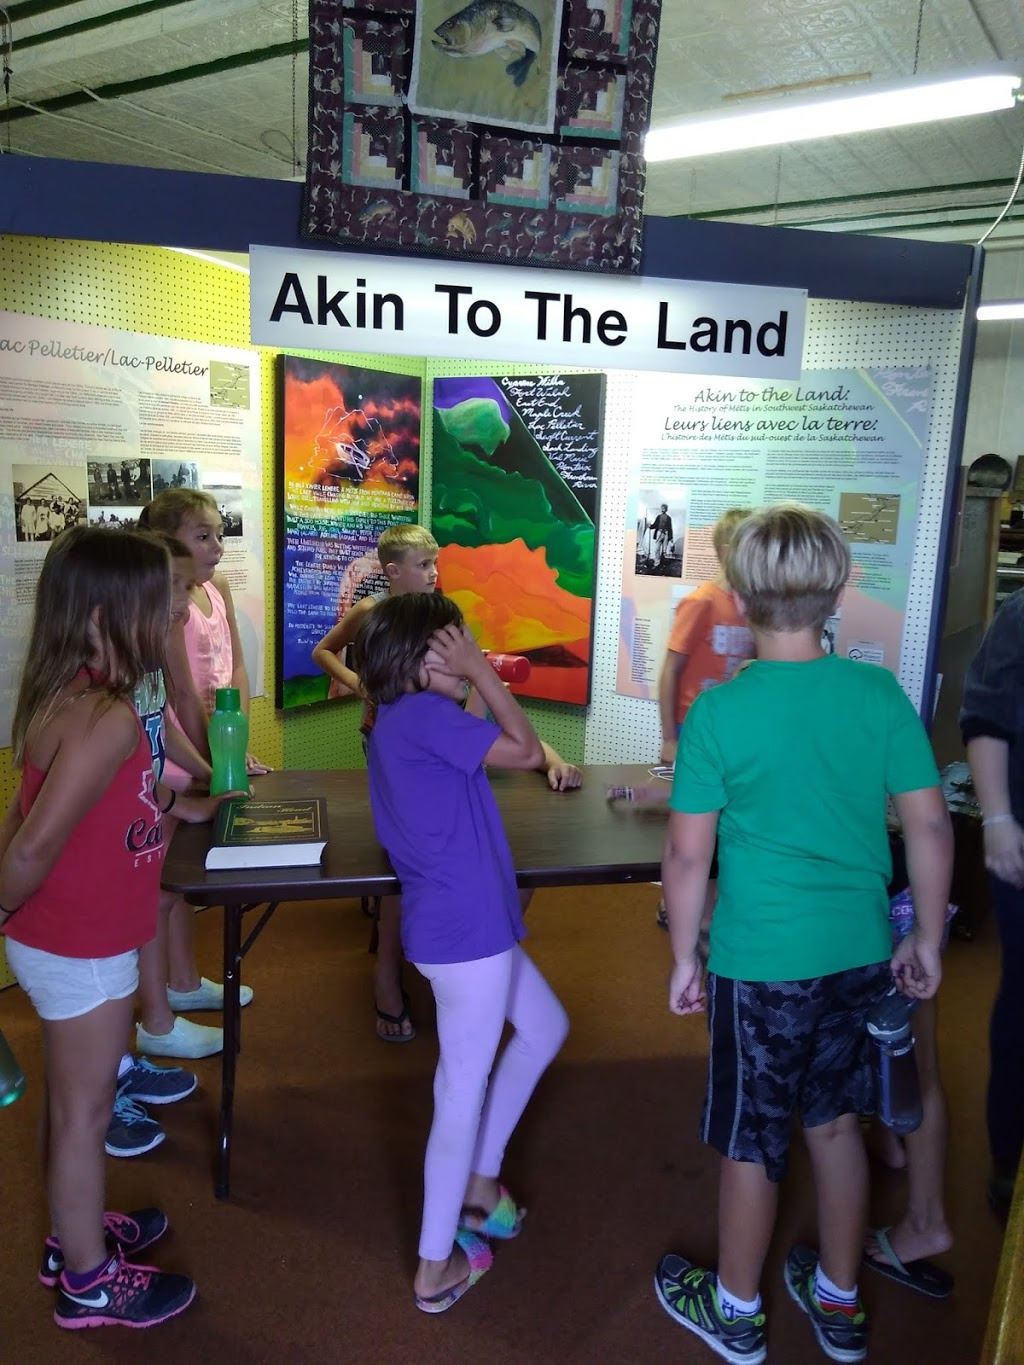 Indian Head Museum | museum | 610 Otterloo St, Indian Head, SK S0G 2K0, Canada | 3066952584 OR +1 306-695-2584